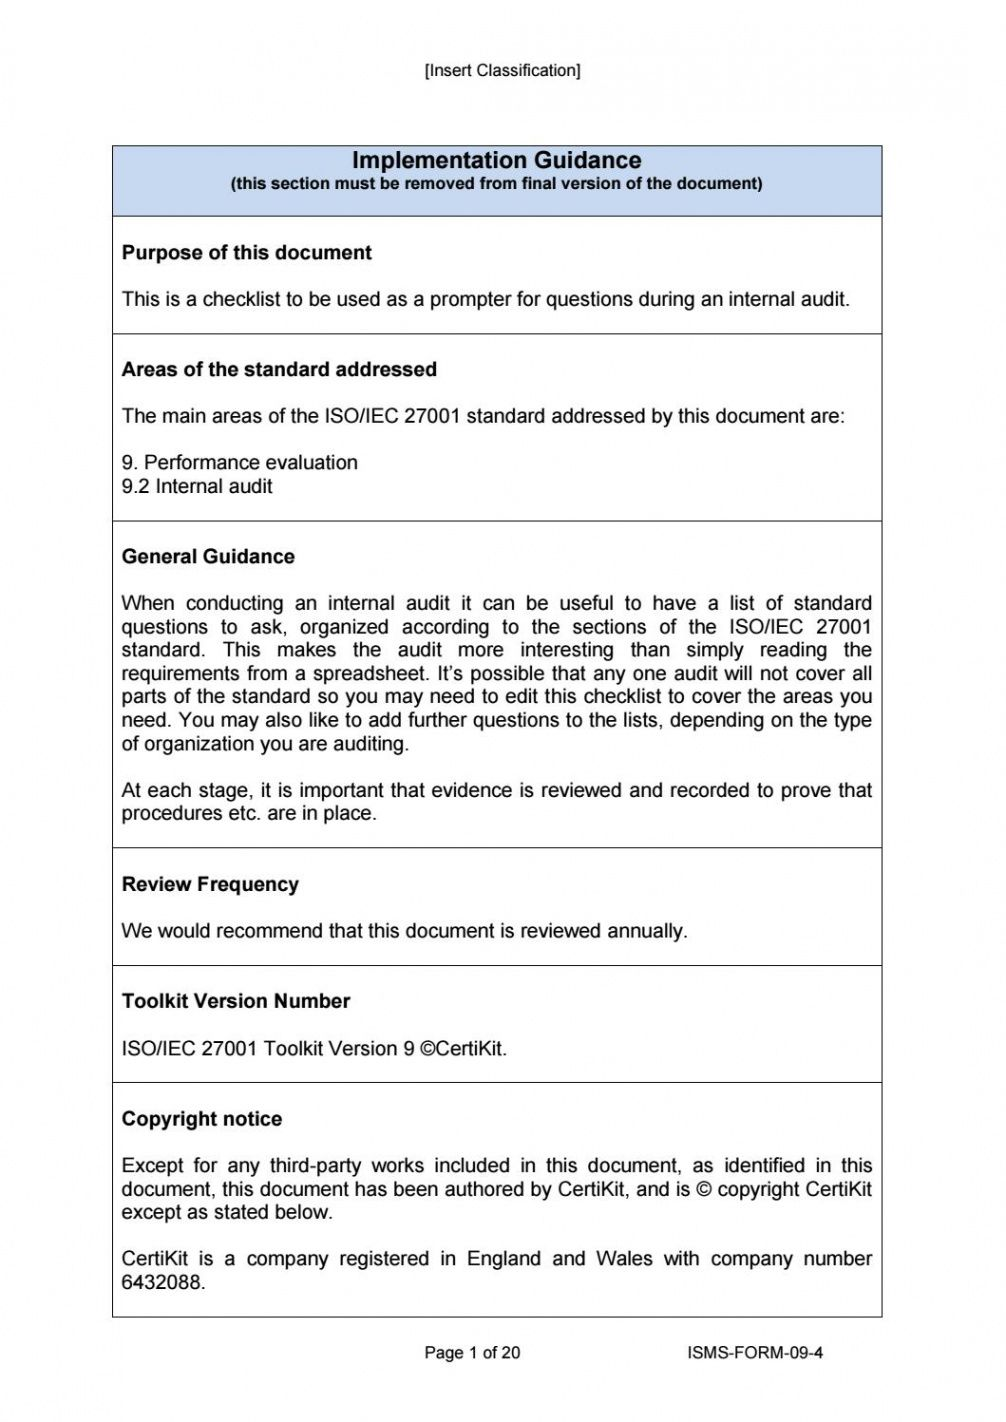 editable ismsform094 internal audit checklist by certikit limited security assessment checklist template pdf